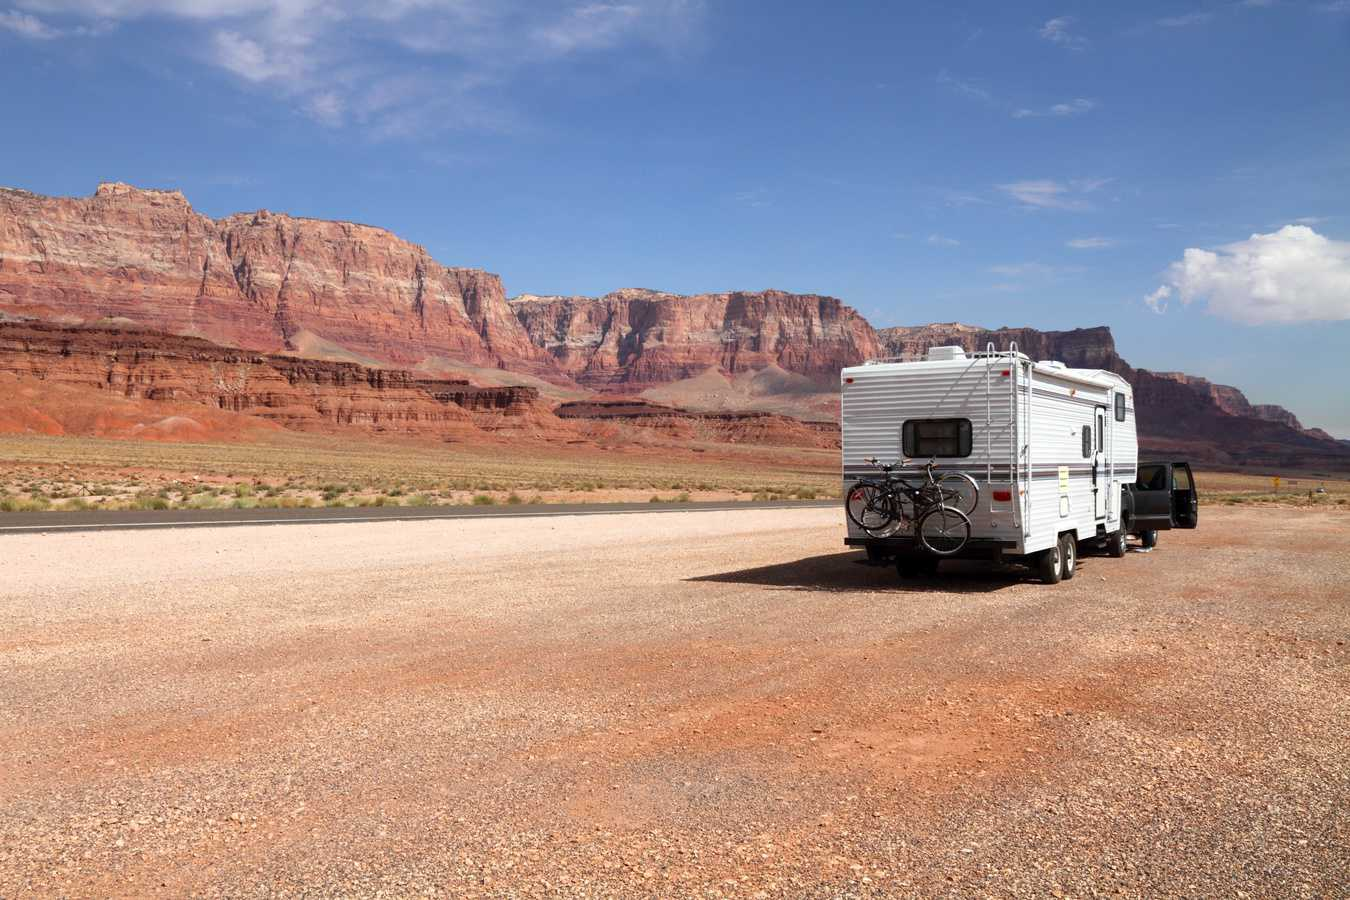 Auto Vox Backup Camera And Mirror The Complete Review Camper Report Pyle Wiring Diagram On Time Delay Switch Best Options For Renting An Rv A Family Trip